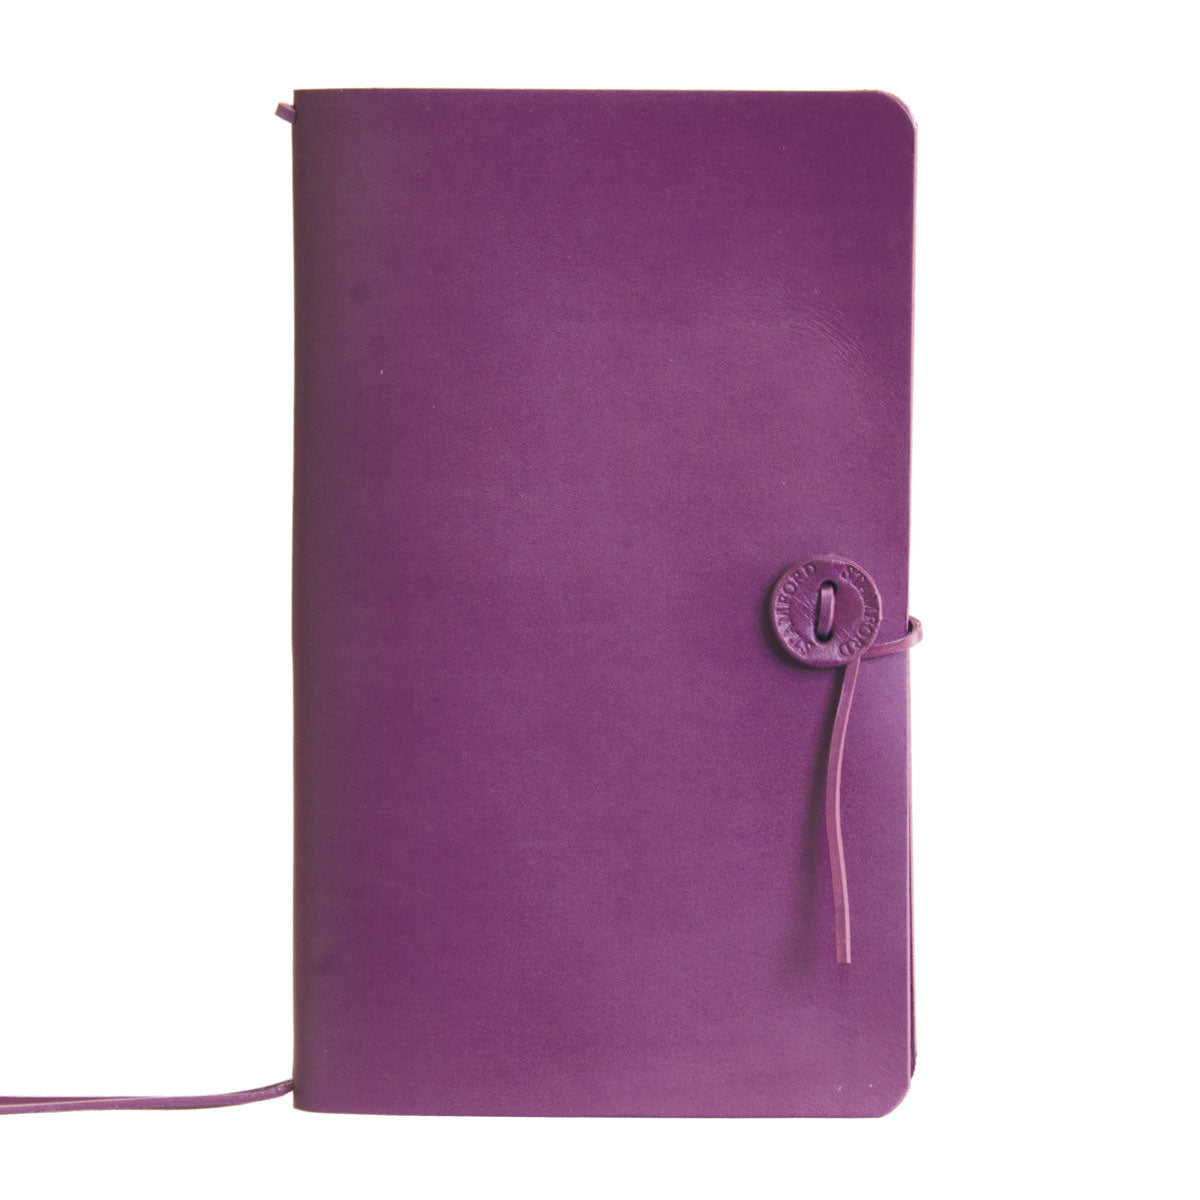 purple leather refillable travellers journal